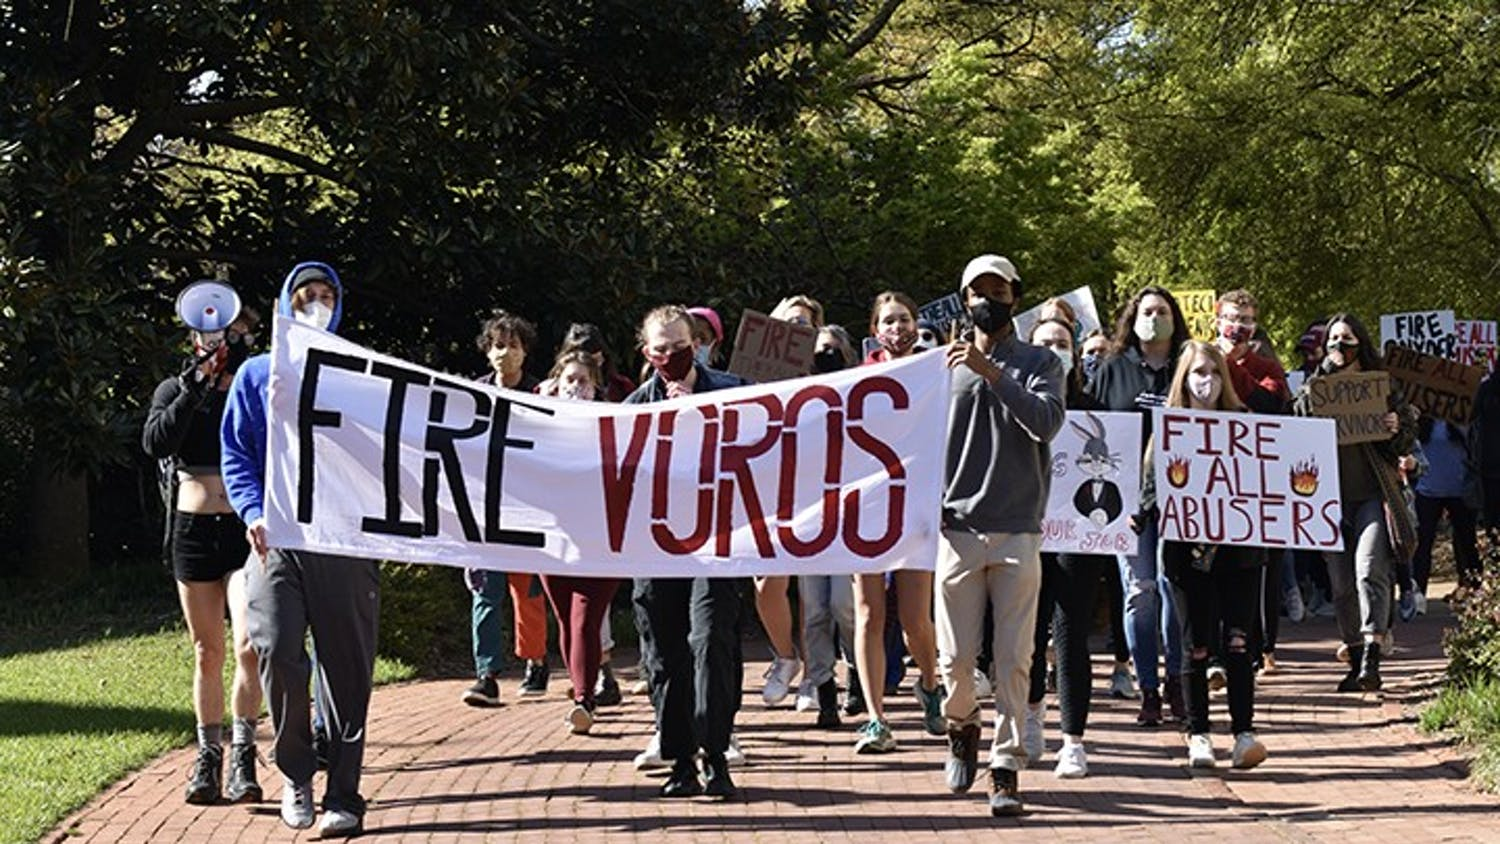 Protestors march from Pickens Street Bridge to the President's House holding signs that demand the firing of all professors accused of sexual misconduct.